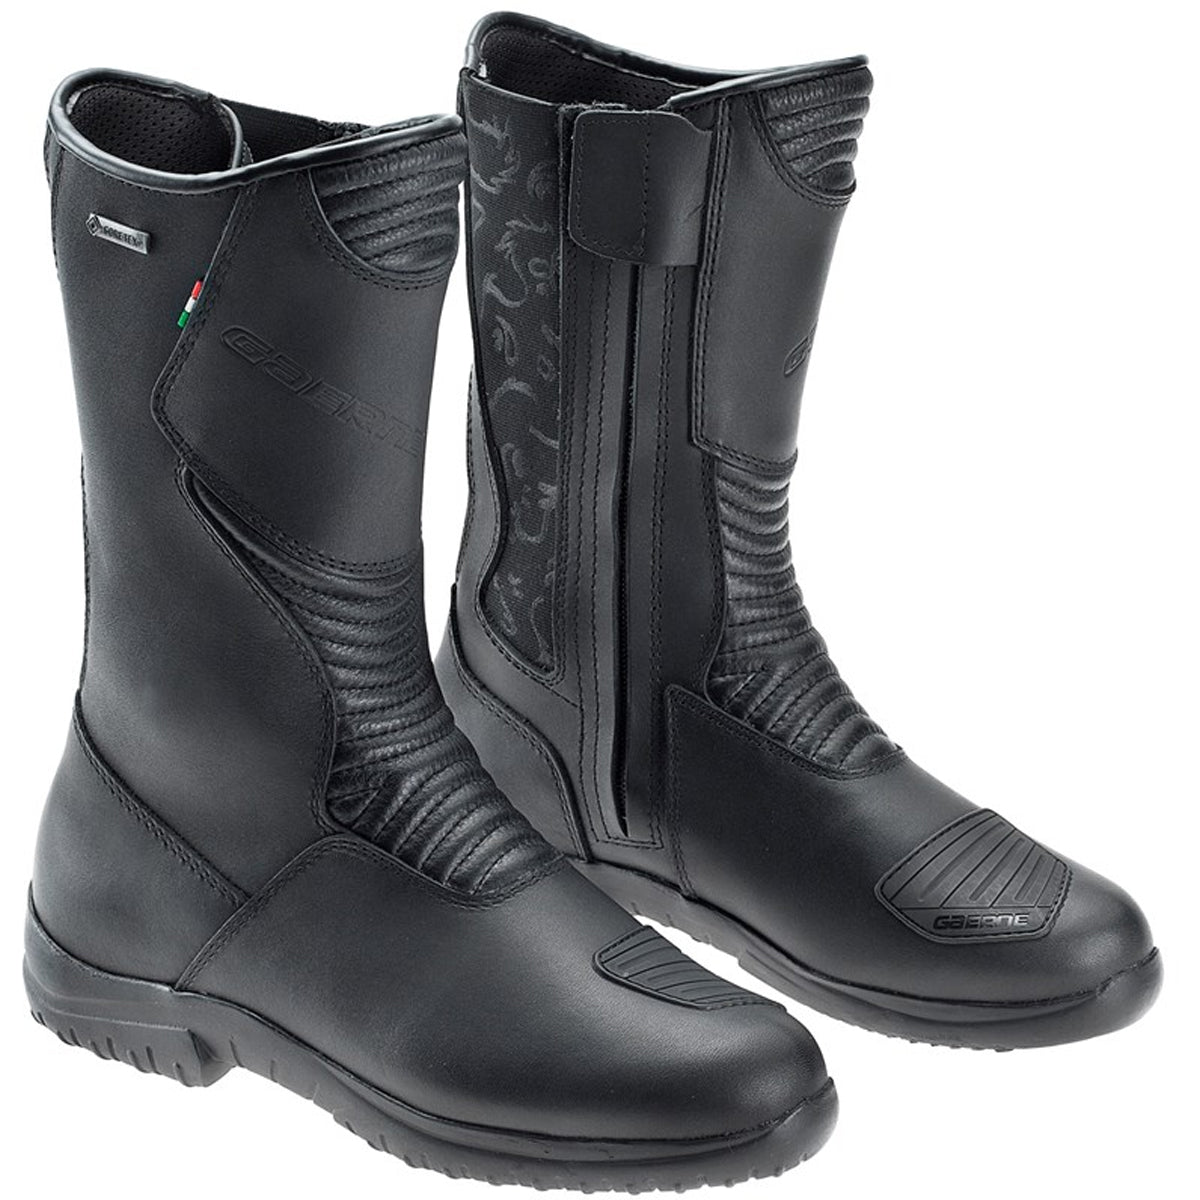 Gaerne Black Rose Gore-Tex Women's Cruiser Boots - Black